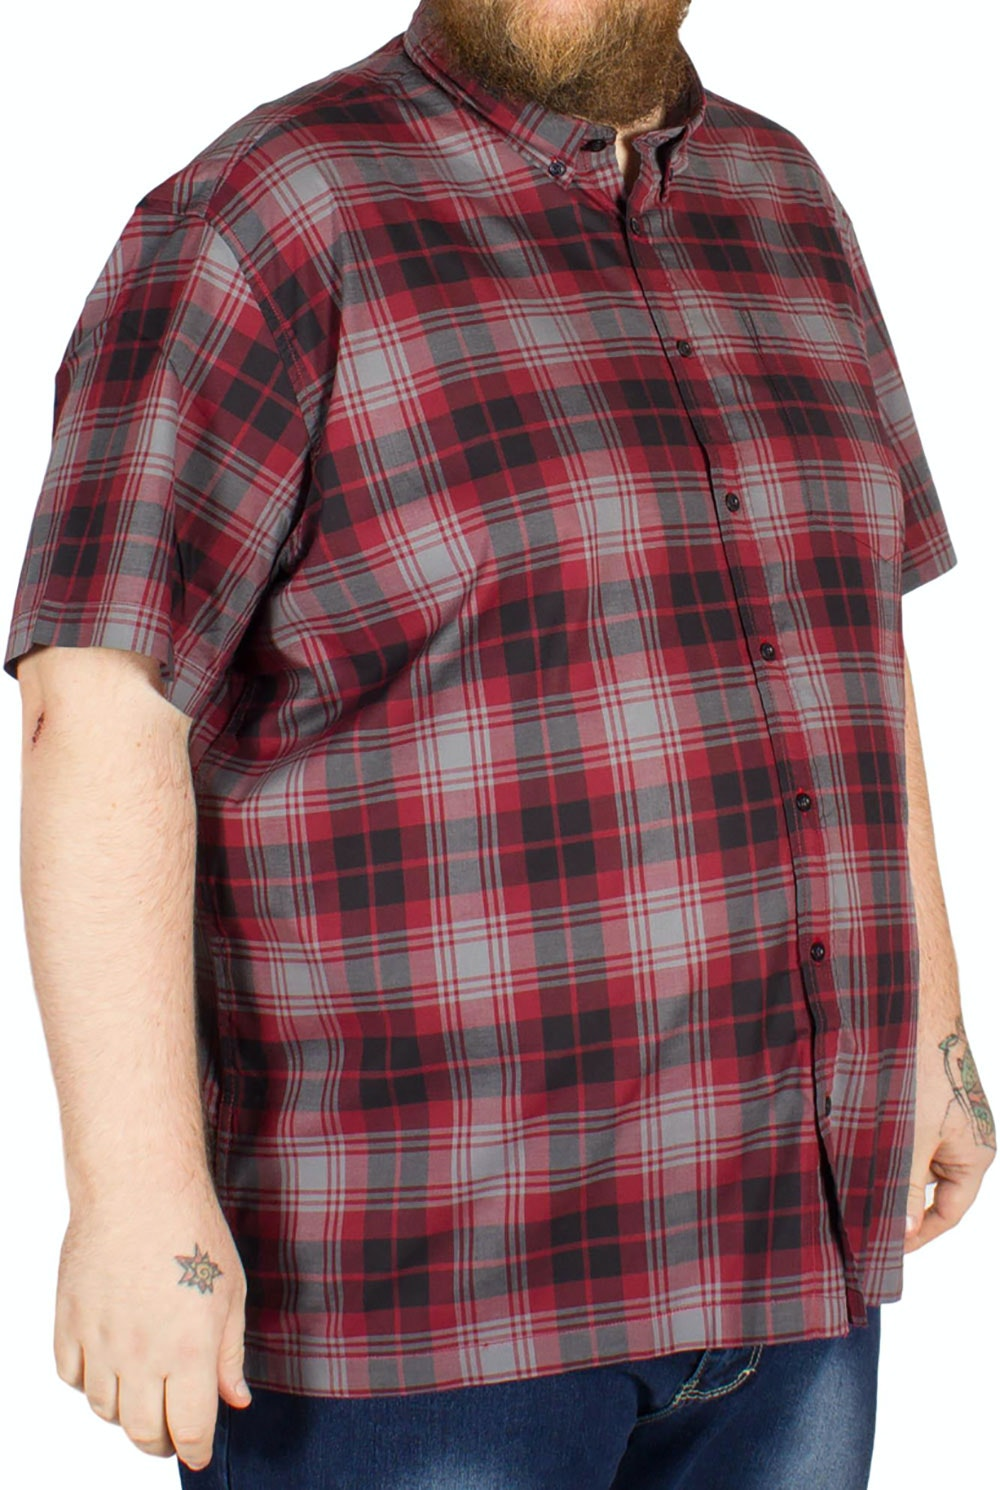 Bigdude Short Sleeve Check Shirt Red/Grey